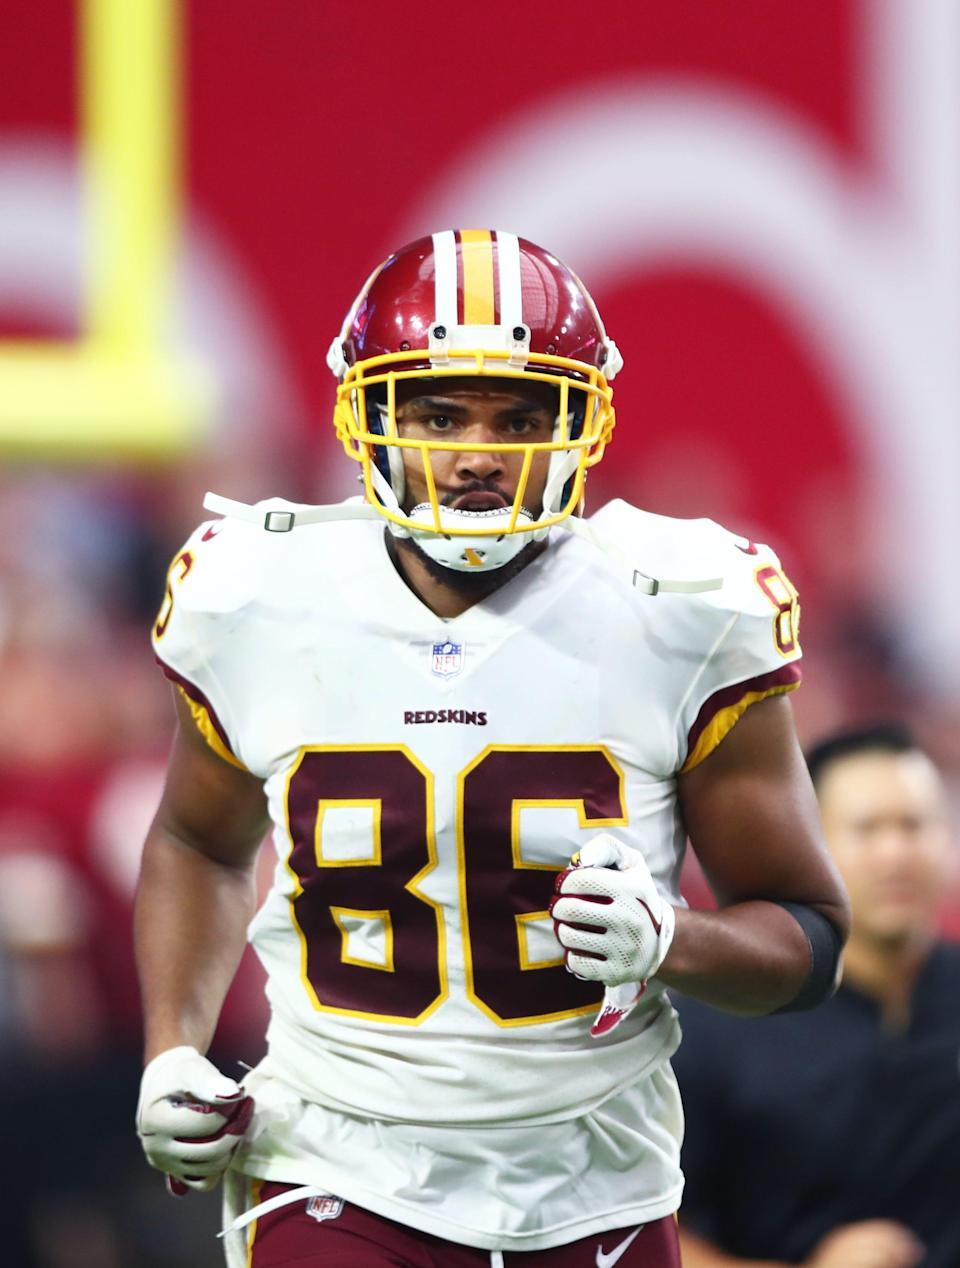 Jordan Reed finished his career with 355 receptions for 3,602 yards and 28 touchdowns.